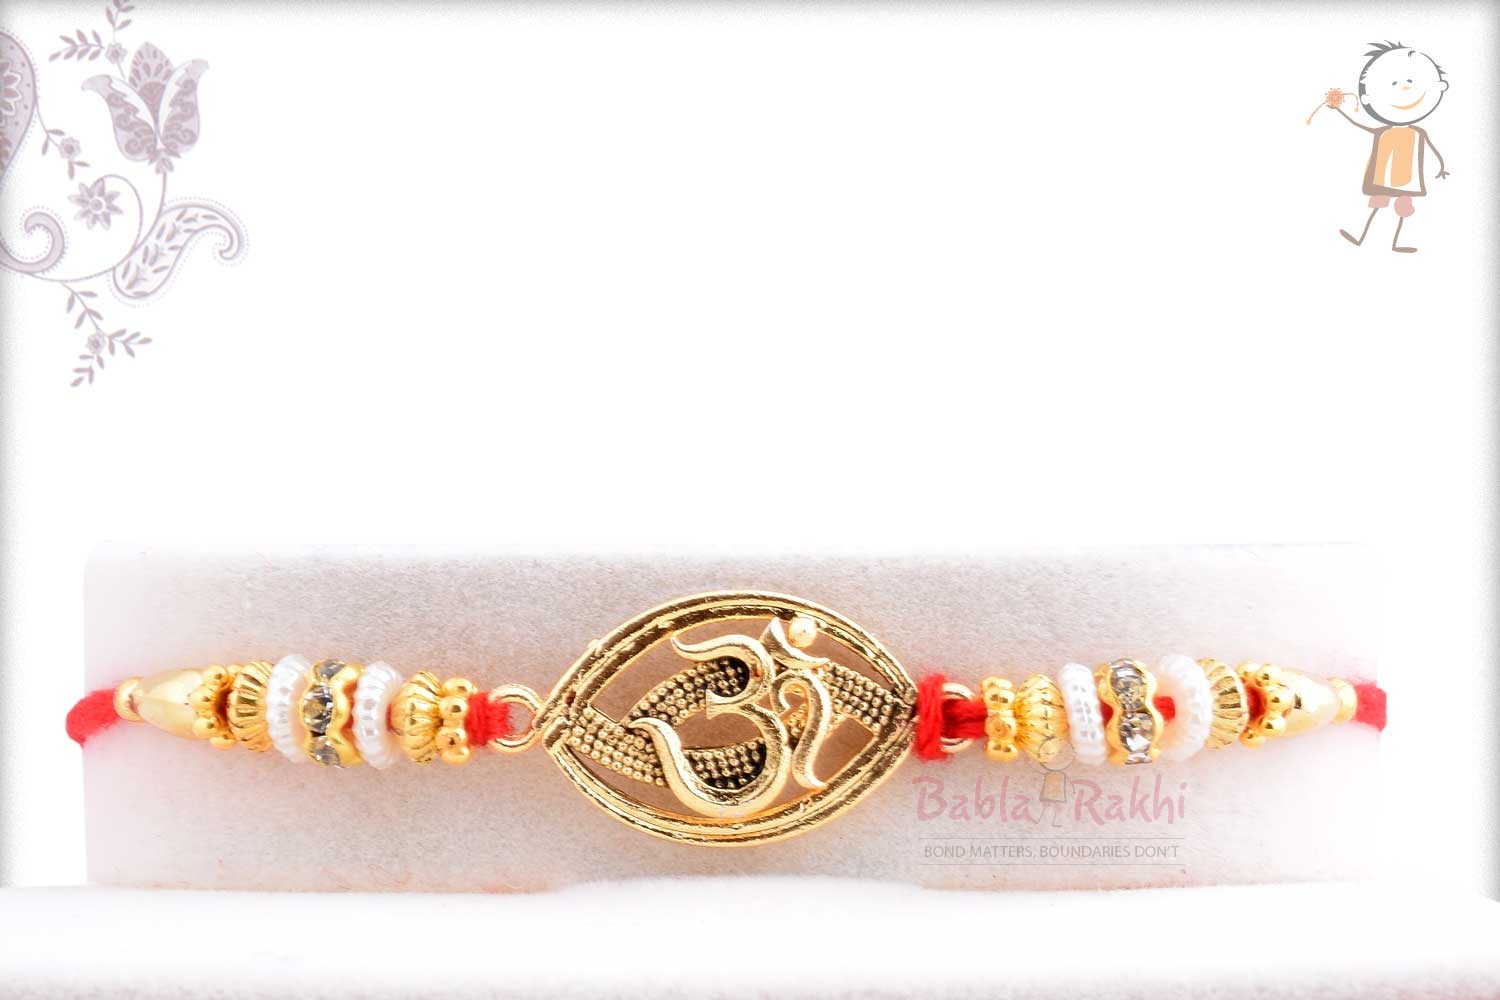 Exclusive Oval OM Rakhi with Beads 1